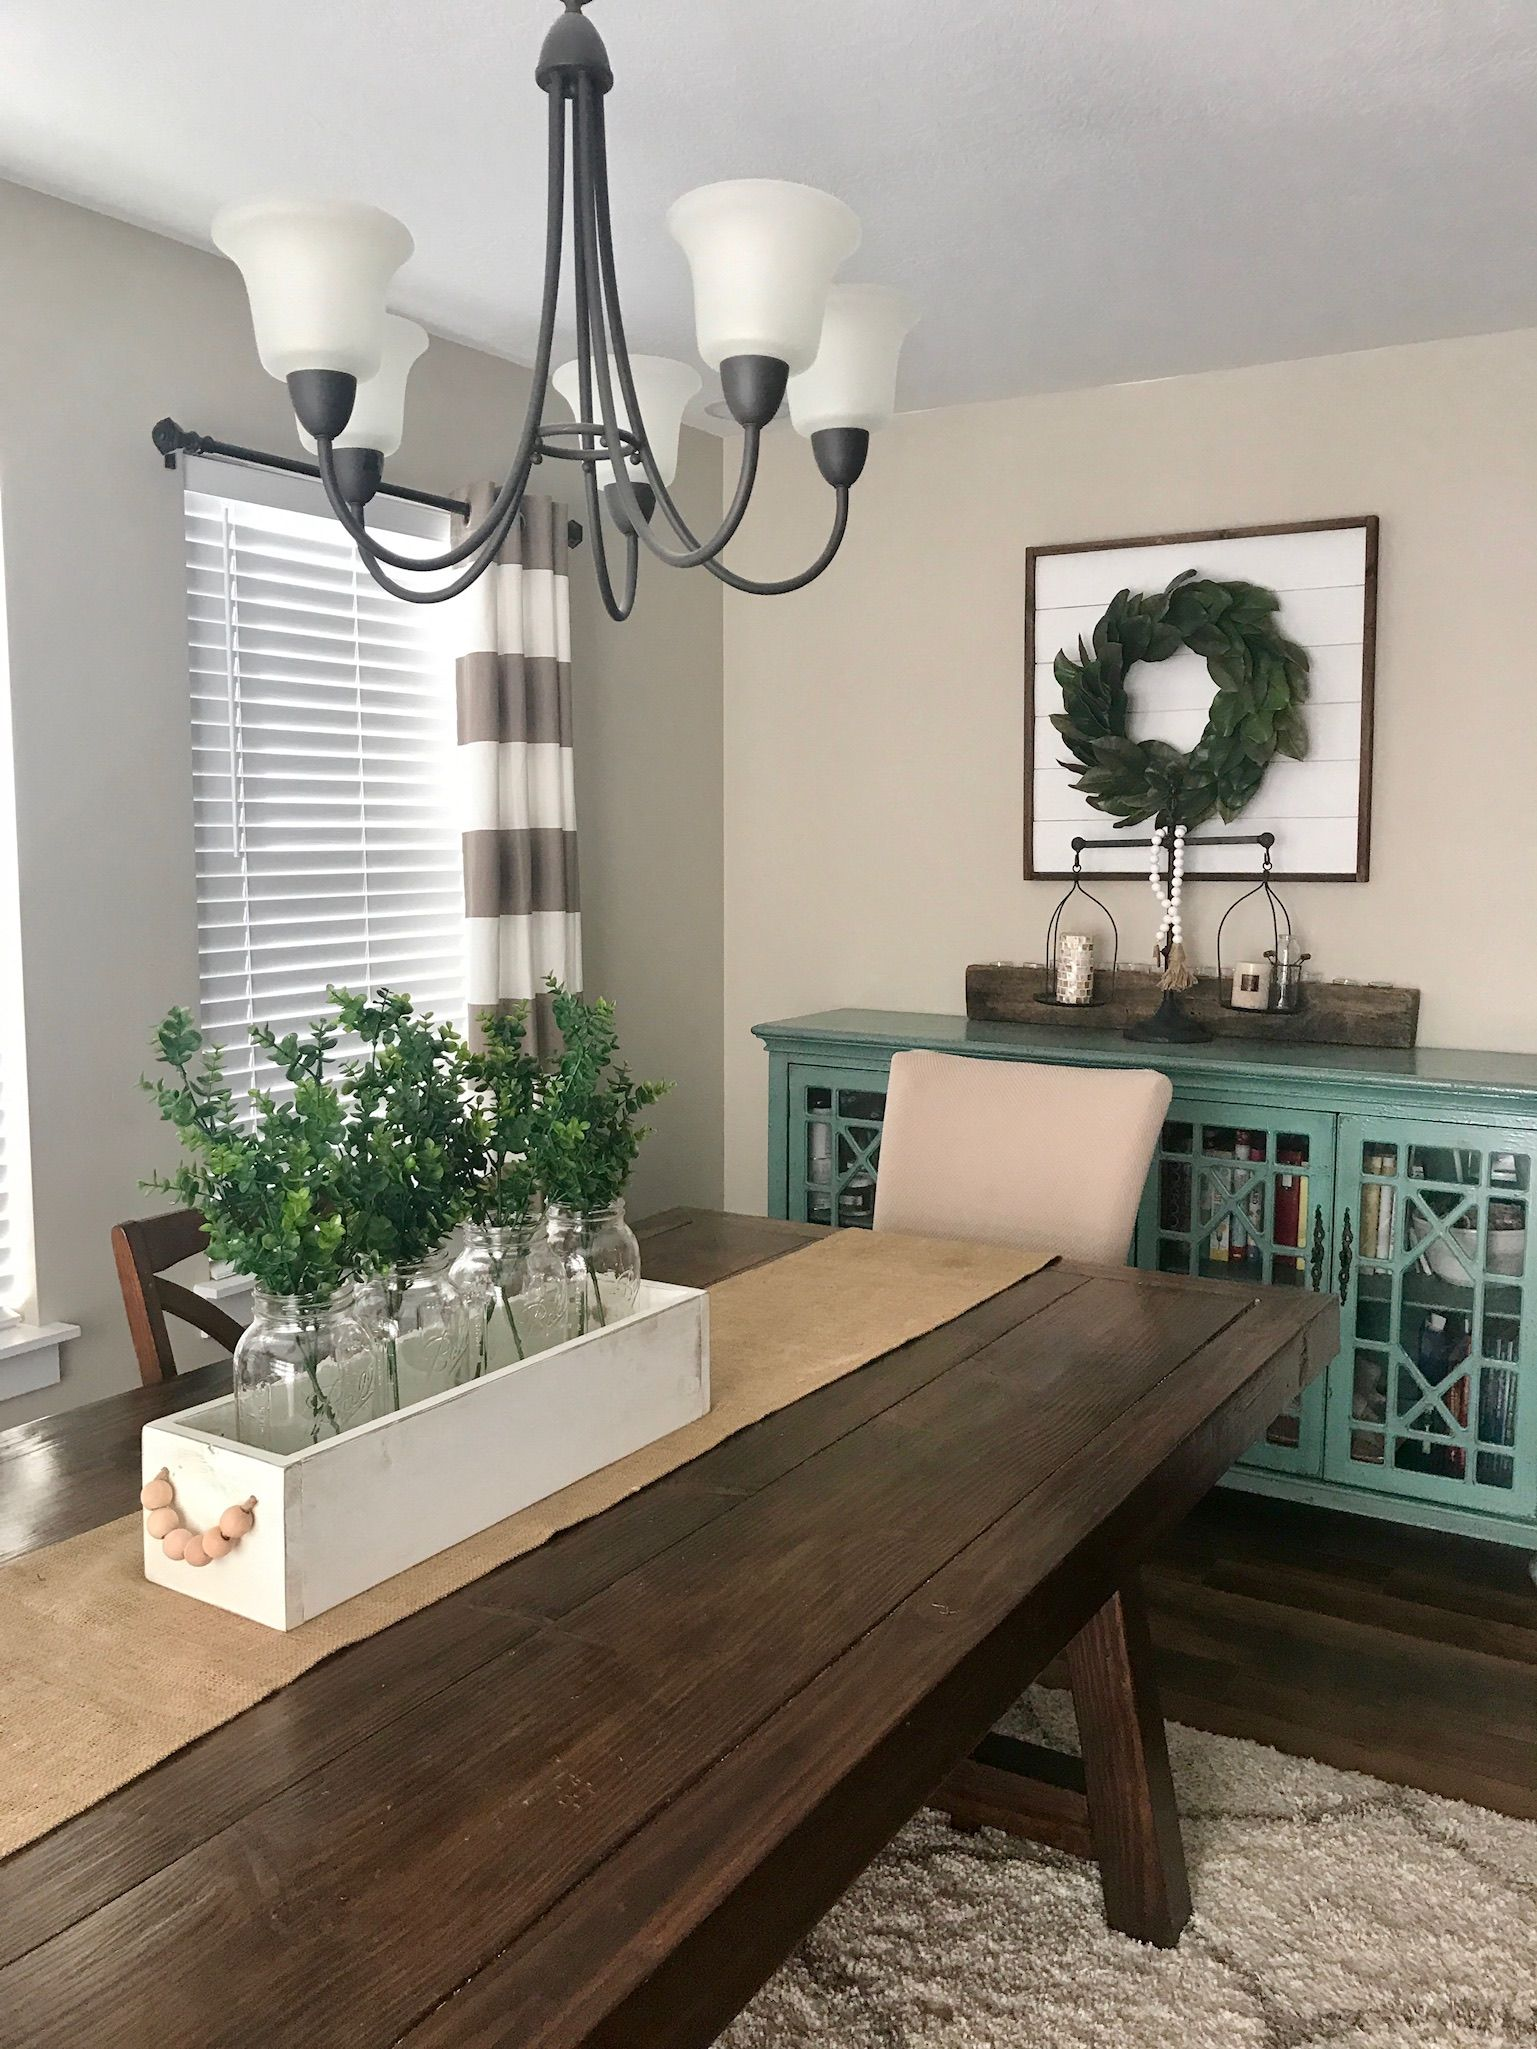 Beautiful Wood Caddy Centerpiece Farmhouse Style Kitchen With A Beautifu Dining Room Table Centerpieces Dining Table Decor Centerpiece Dining Room Table Decor